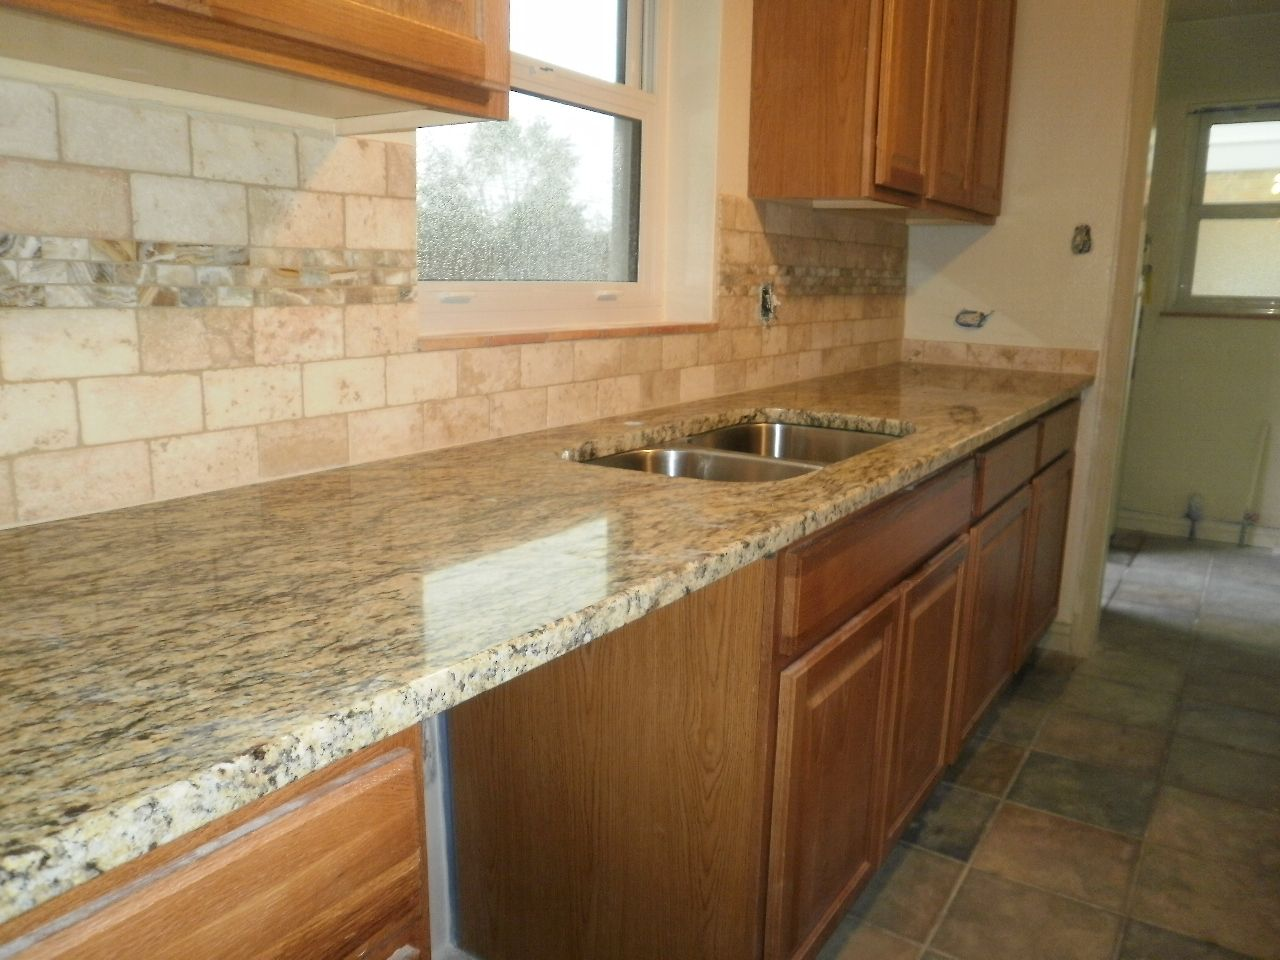 Oak Cabinets With Granite Countertops Pictures What Type Of Backsplash To Use With St Cecilia Countertop